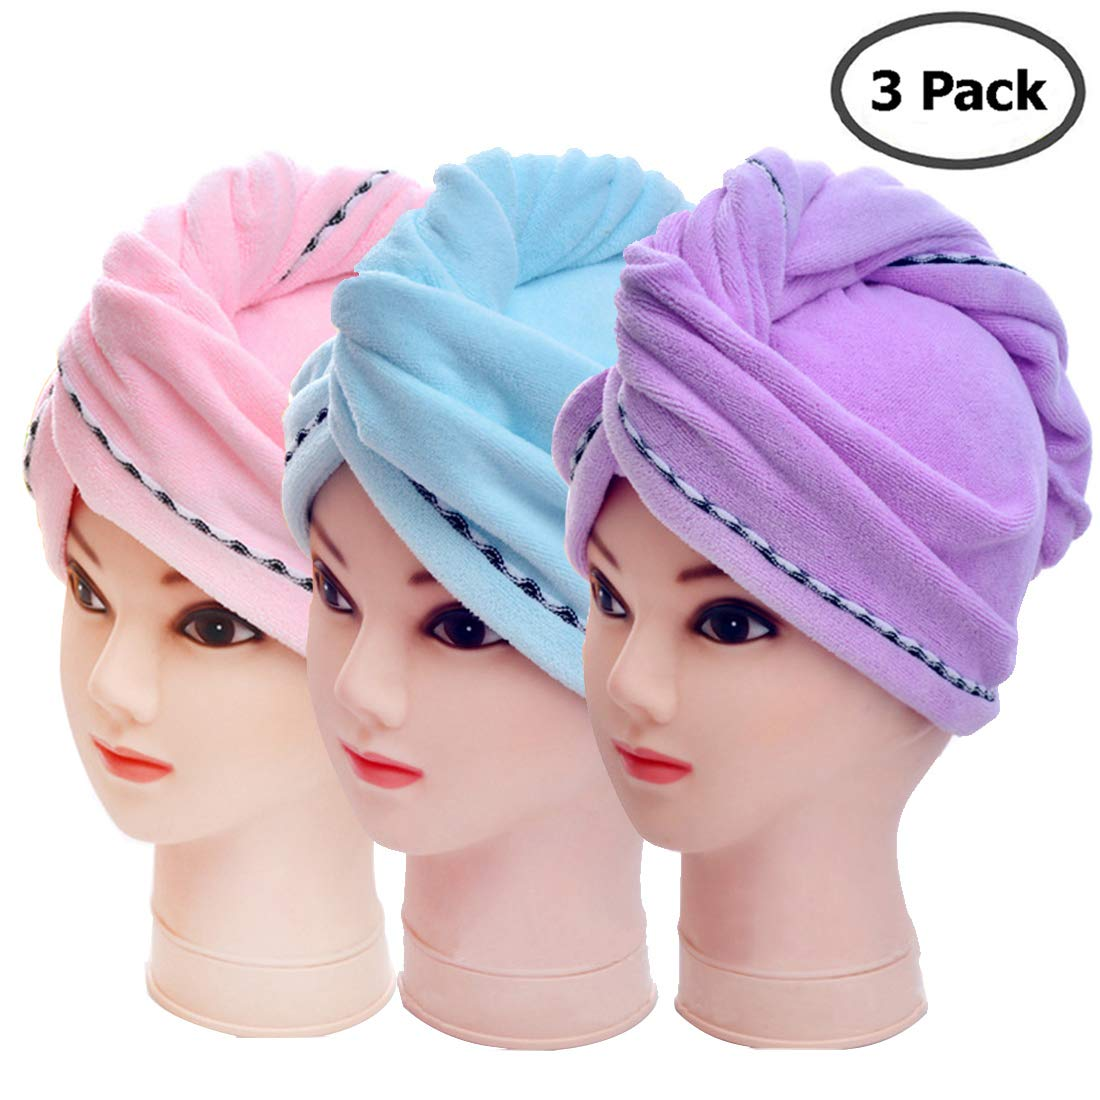 3 Pack Microfiber Hair Towel Wrap BEoffer Super Absorbent Twist Turban Fast Drying Hair Caps with Buttons Bath Loop Fasten Salon Dry Hair Hat Pink Blue Purple by BEoffer